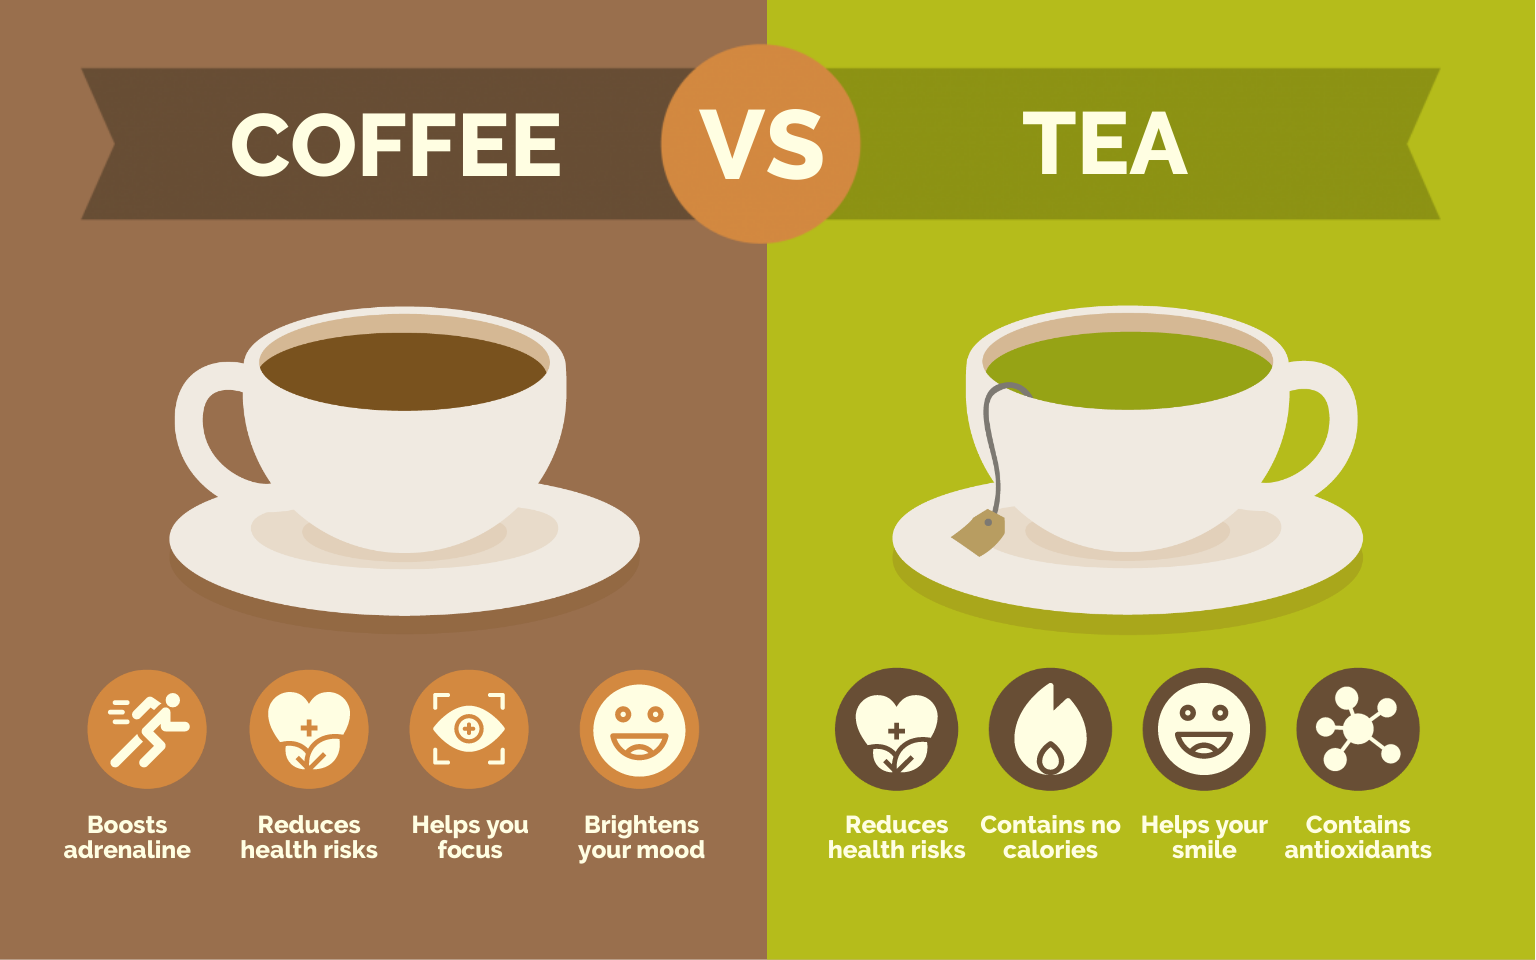 an infographic comparing coffee and tea.